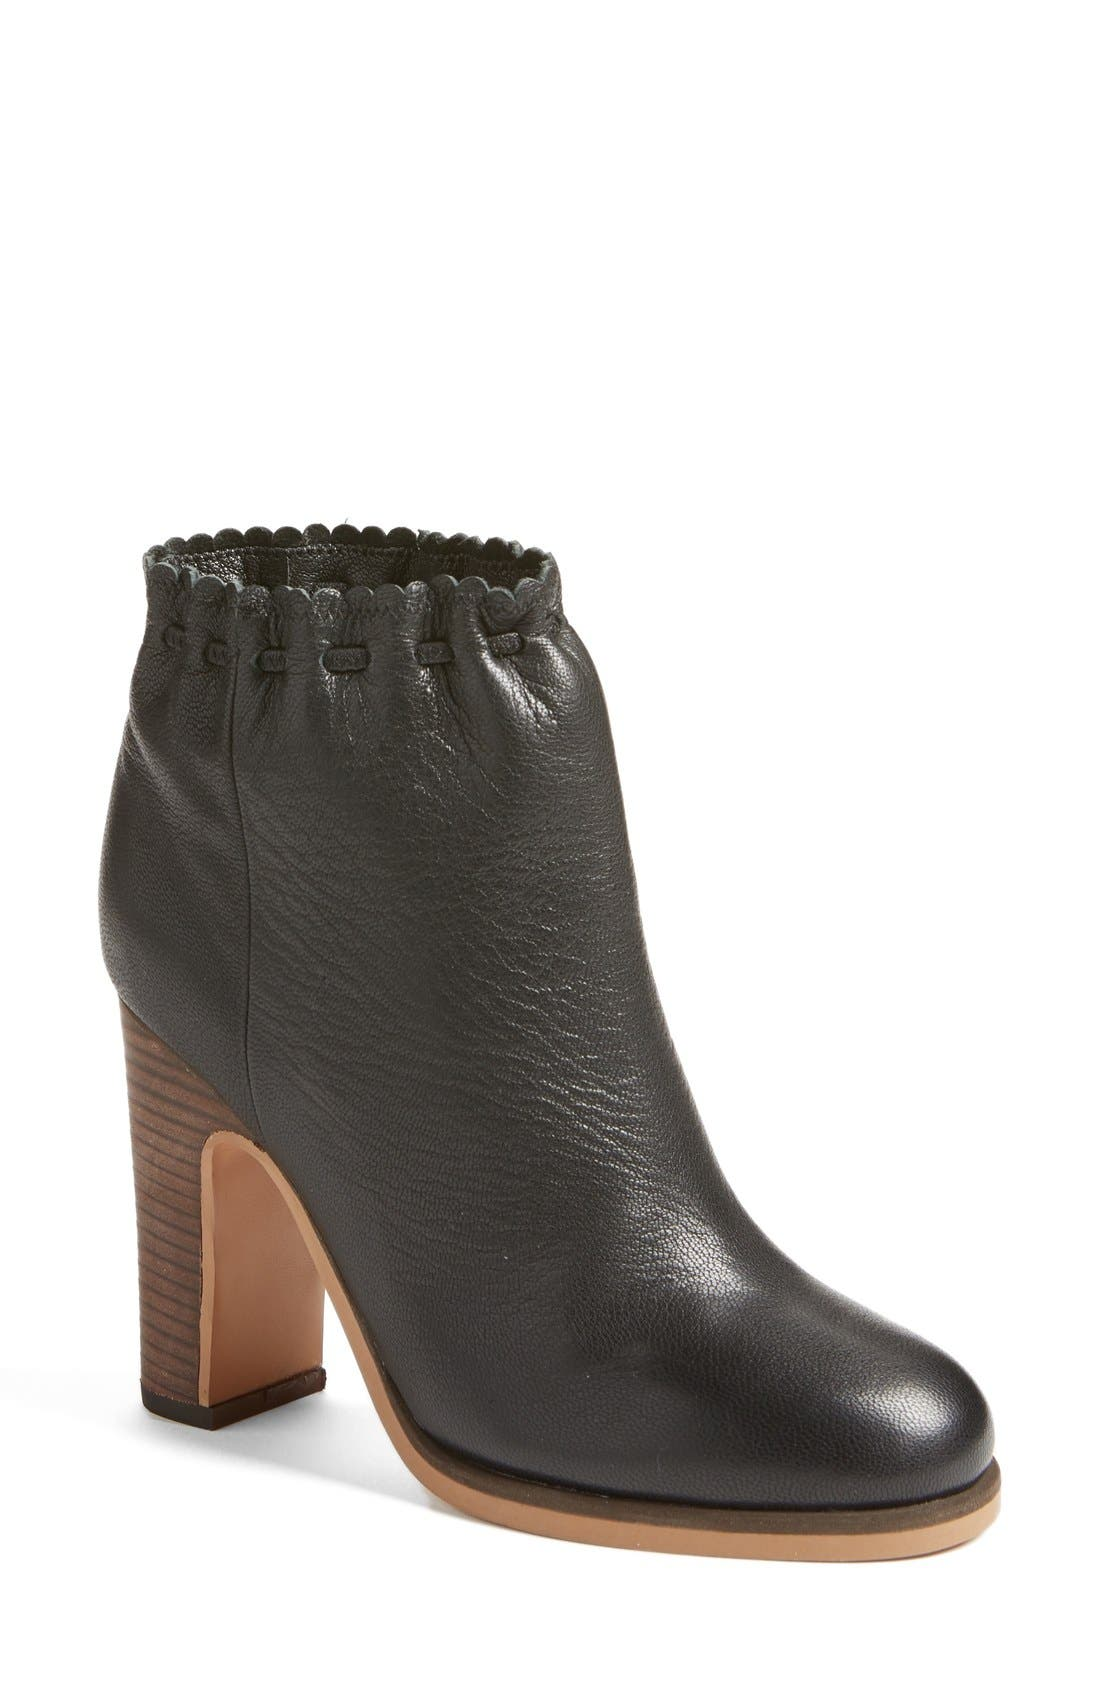 SEE BY CHLOÉ Jane Scalloped Bootie